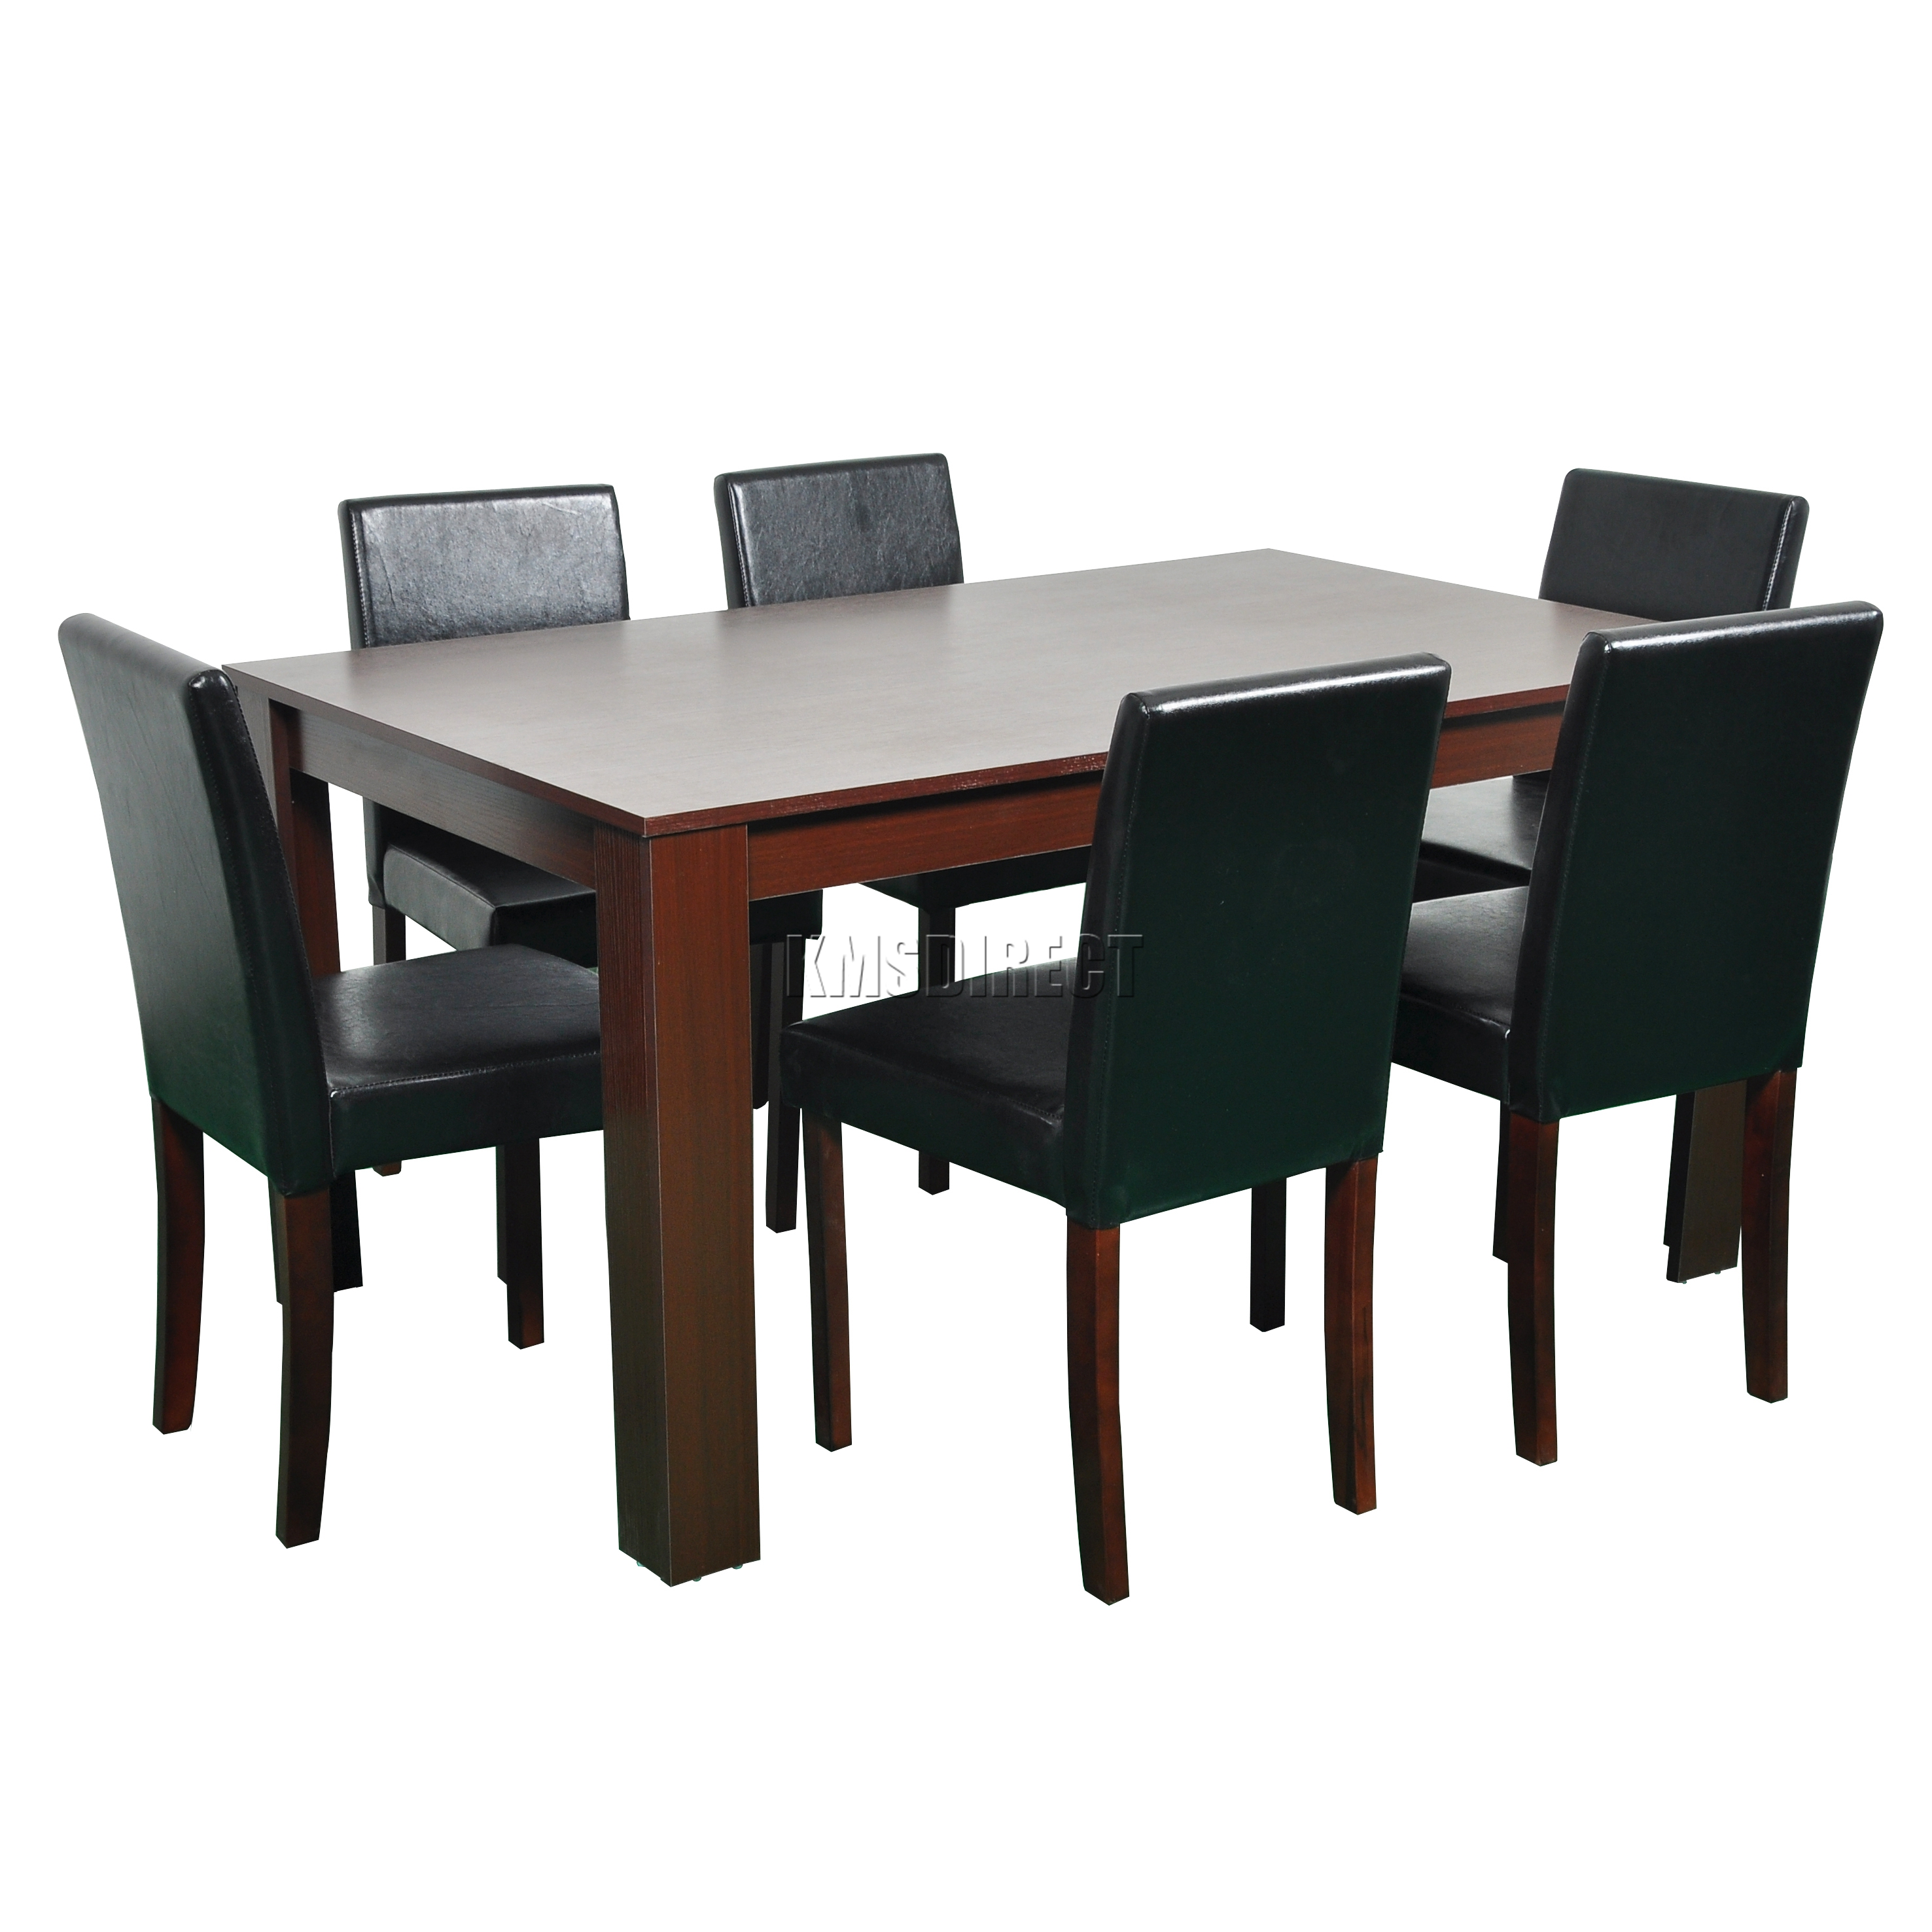 COSMETIC DAMAGED Wooden Dining Table 6 Faux Leather Chairs  : DINING TABLE MDF 6 PU CHAIR DS05 WALNUT KMSWM01 from www.ebay.it size 2953 x 2953 jpeg 1781kB